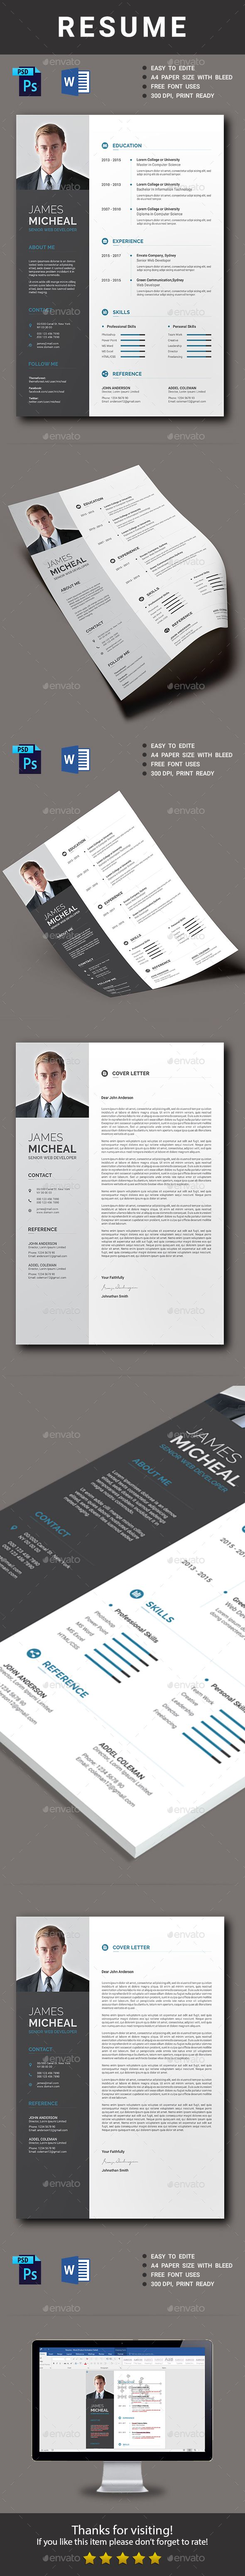 format resume writing%0A  Resume  Resumes Stationery Download here  https   graphicriver net